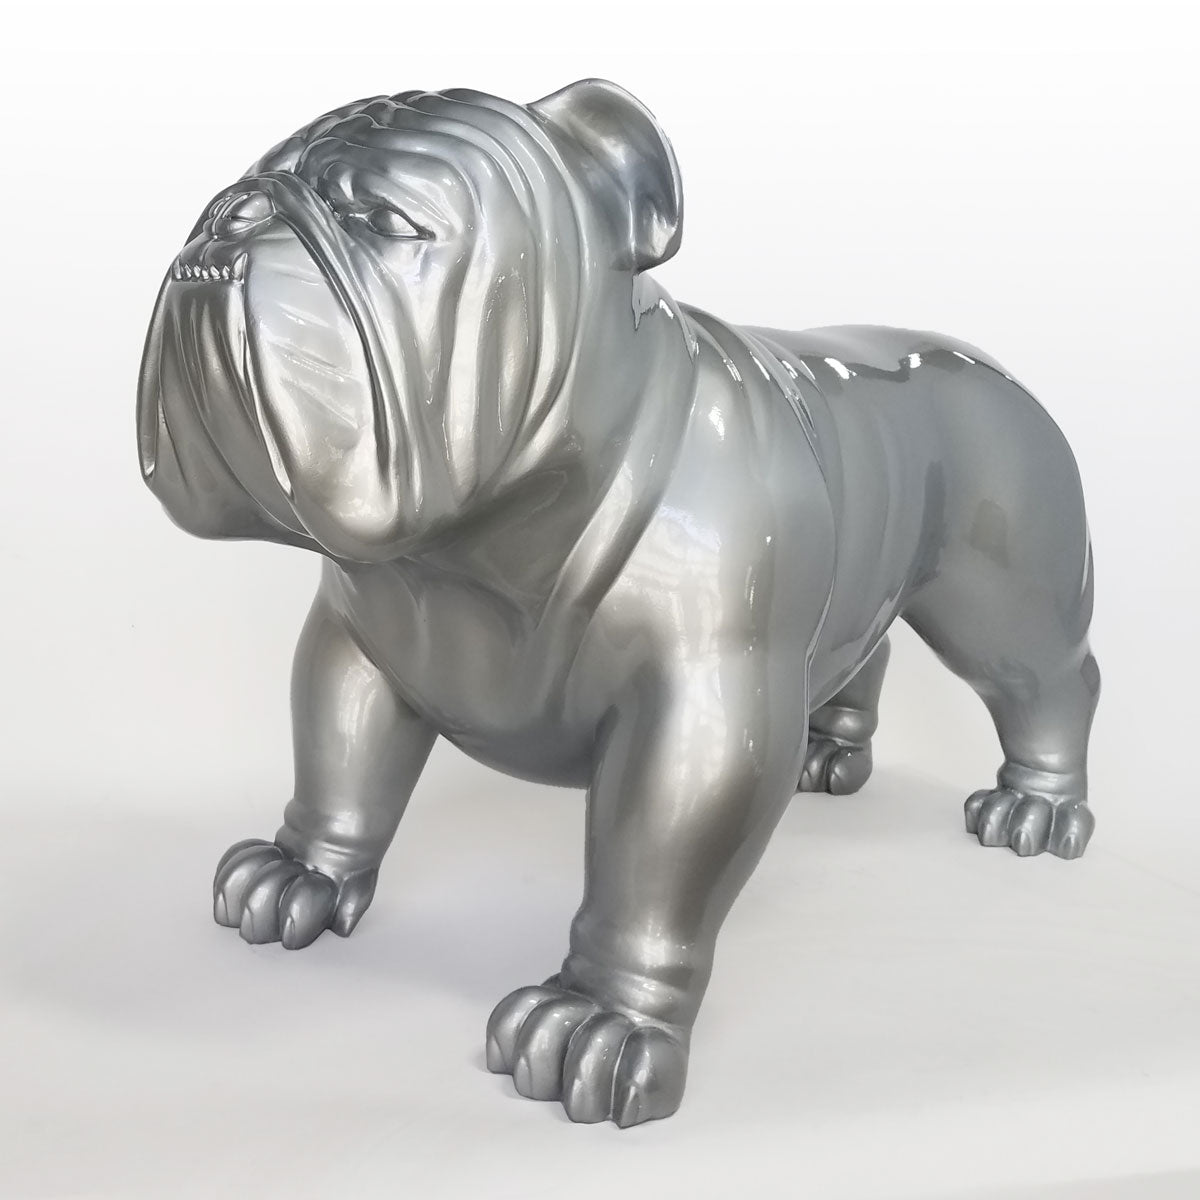 Silver Bulldog three quarters view facing left